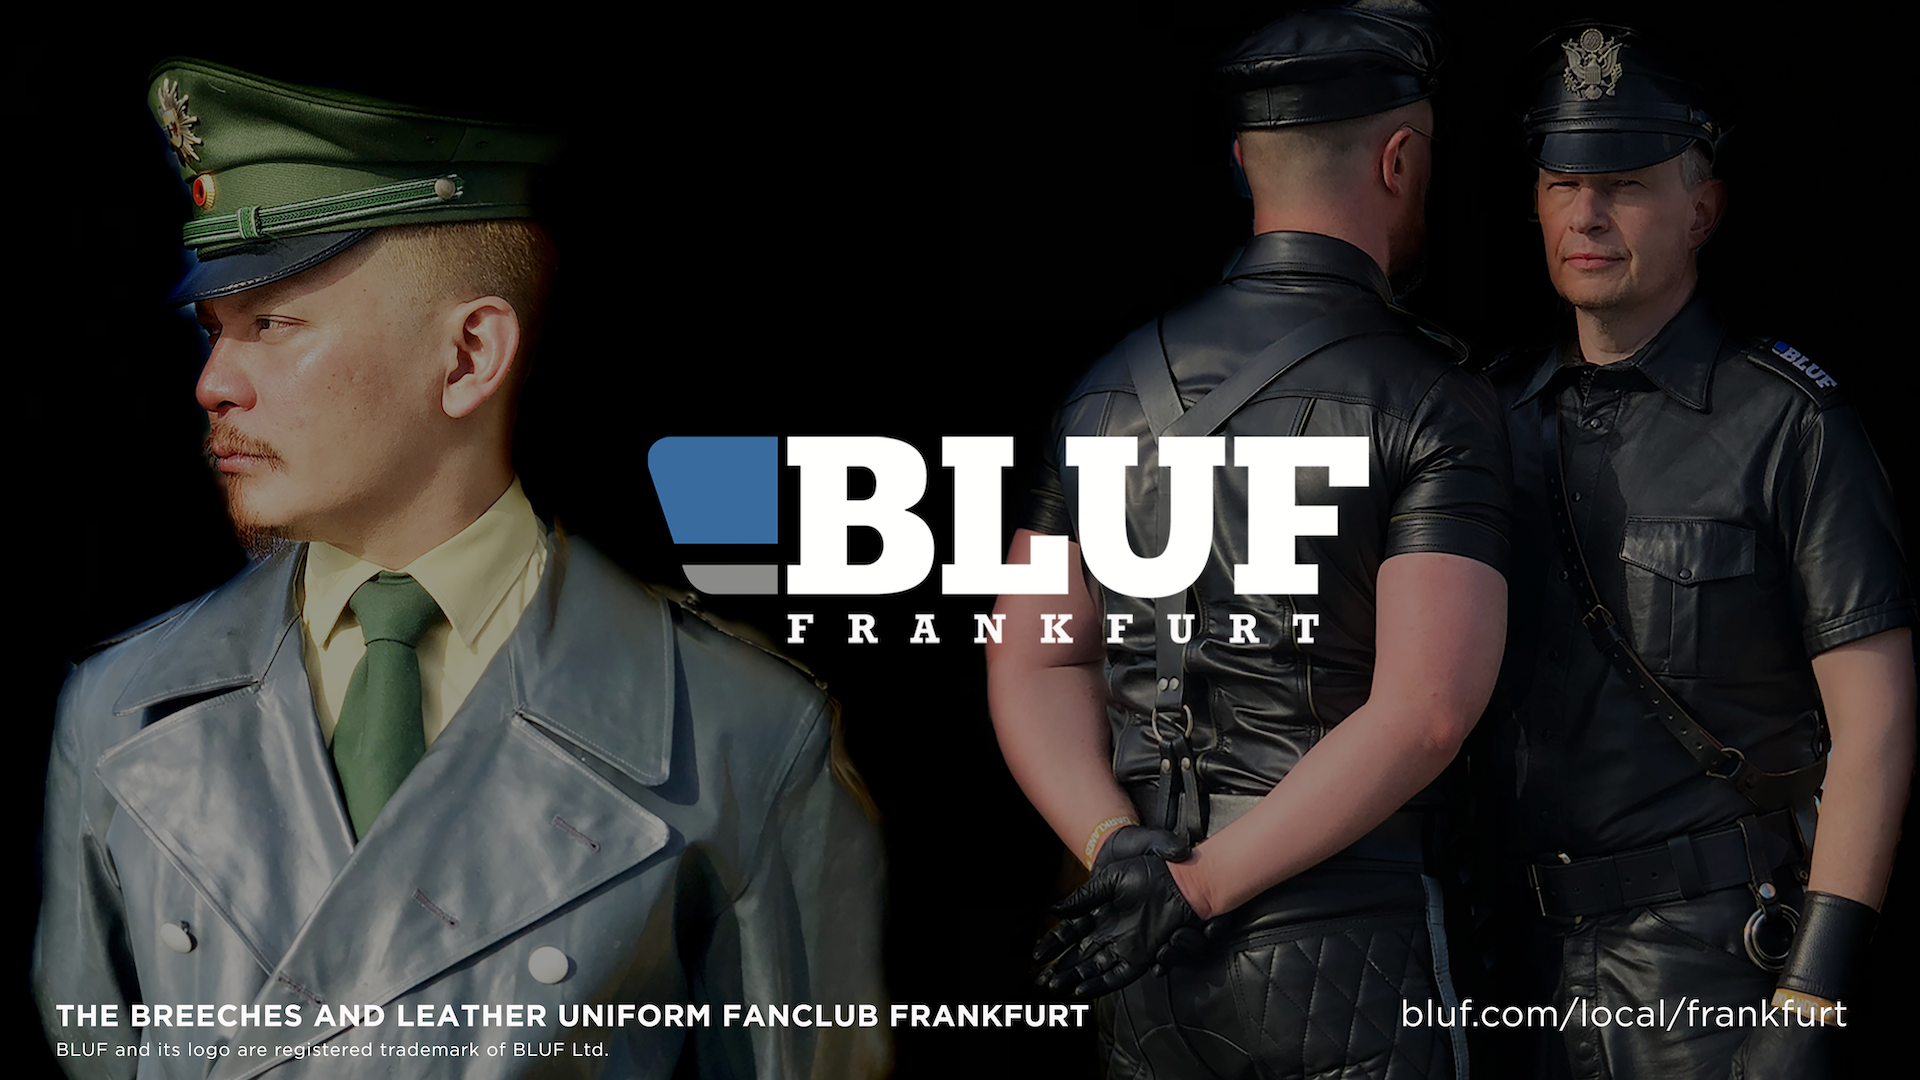 It's time to shine and to show your pride! Welcome to BLUF Frankfurt!